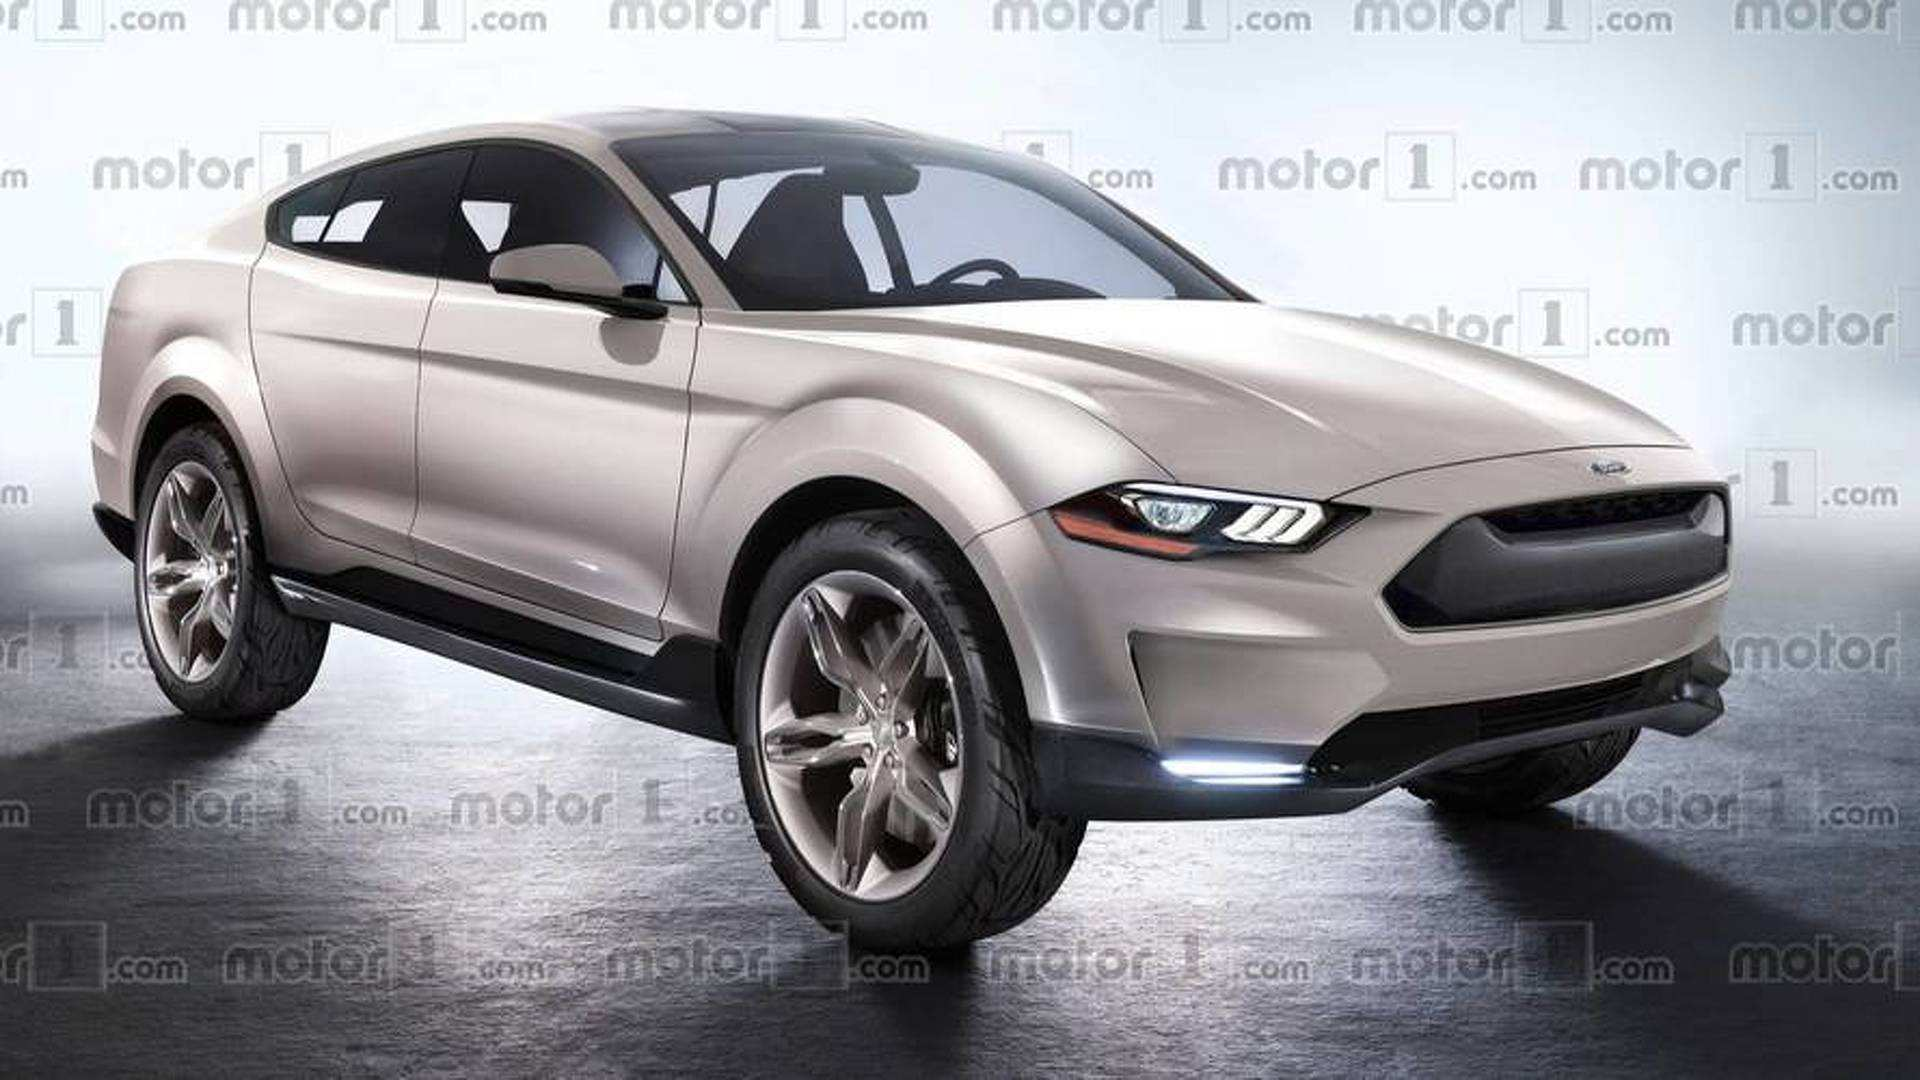 67 The Ford Concept Cars 2020 Spesification with Ford Concept Cars 2020